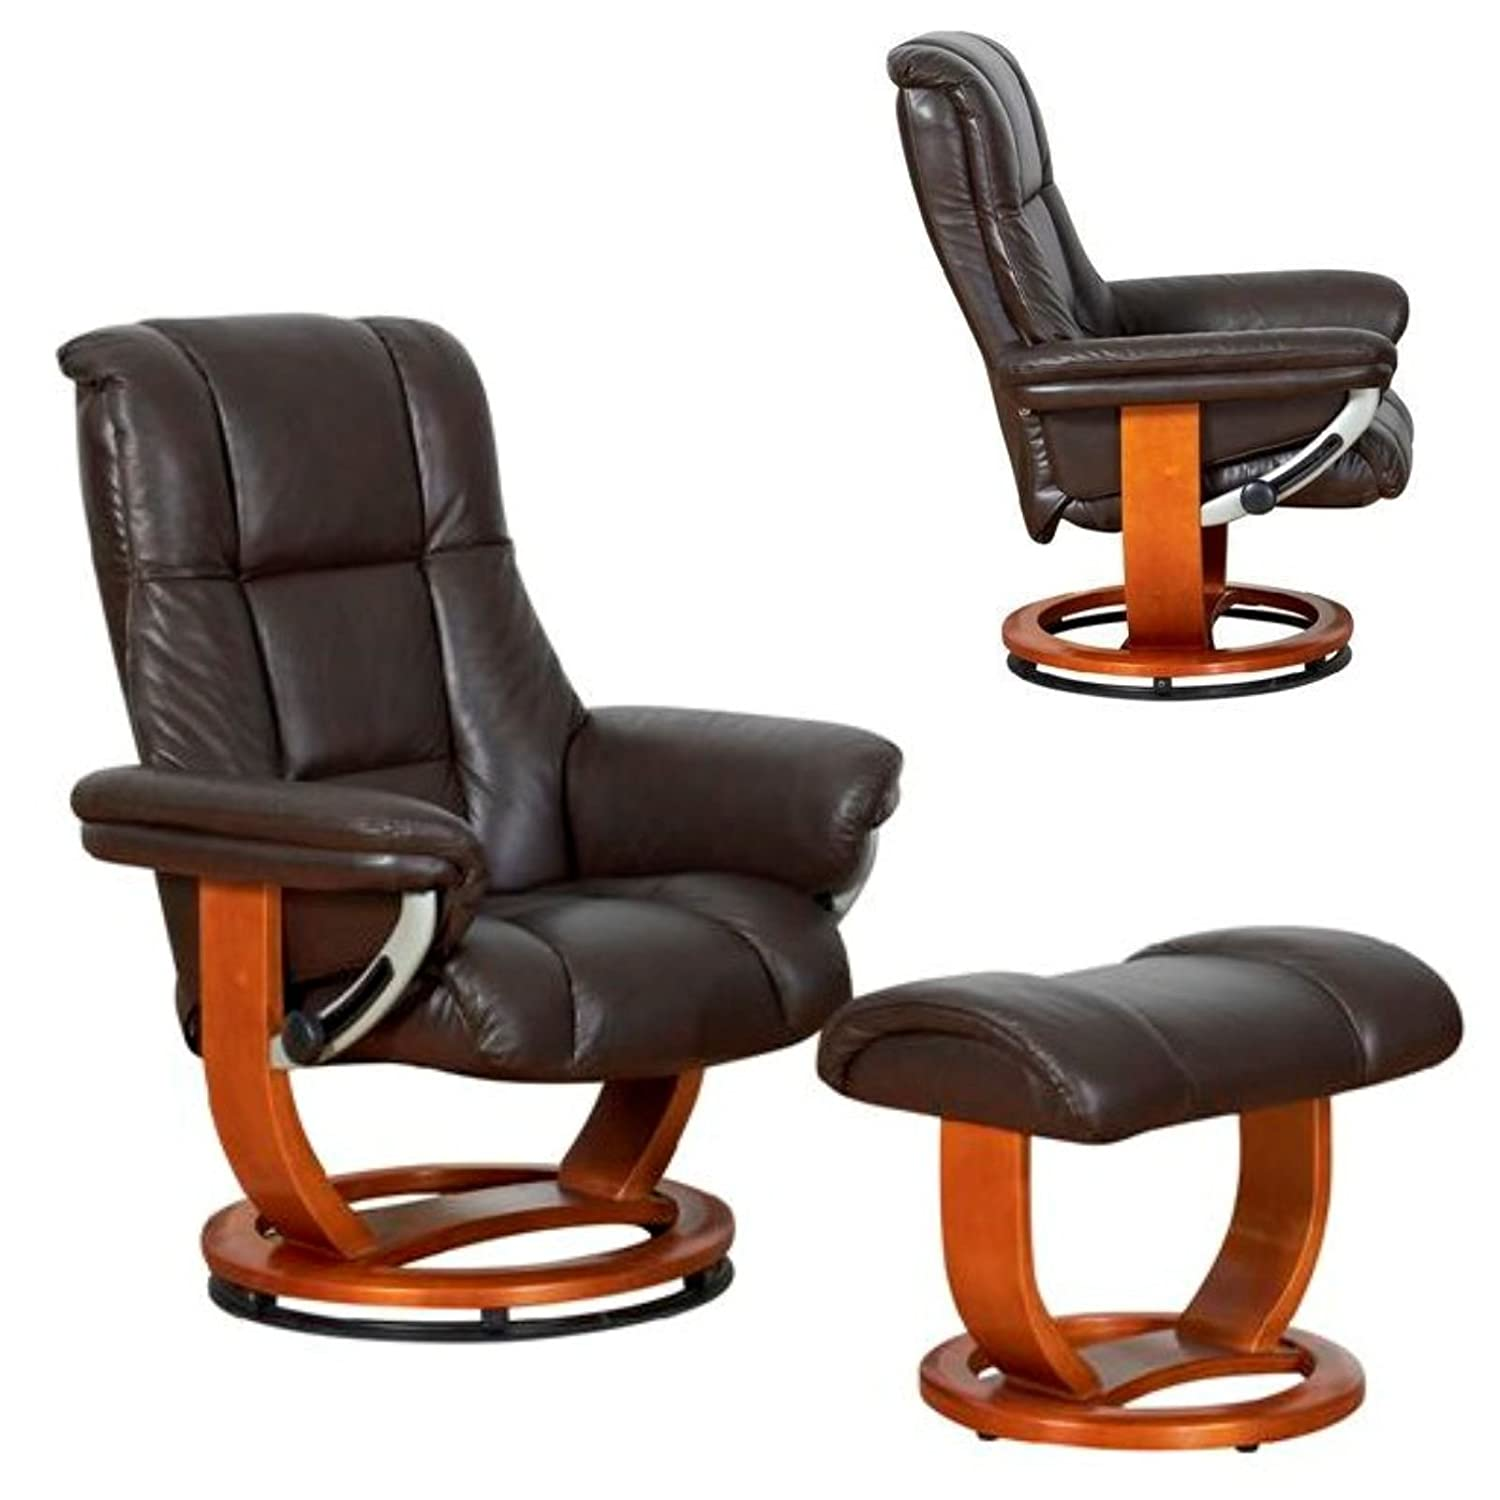 The Windsor Standard - Genuine Leather Recliner Swivel Chair in Chocolate Amazon.co.uk Kitchen u0026 Home  sc 1 st  Amazon UK & The Windsor Standard - Genuine Leather Recliner Swivel Chair in ... islam-shia.org